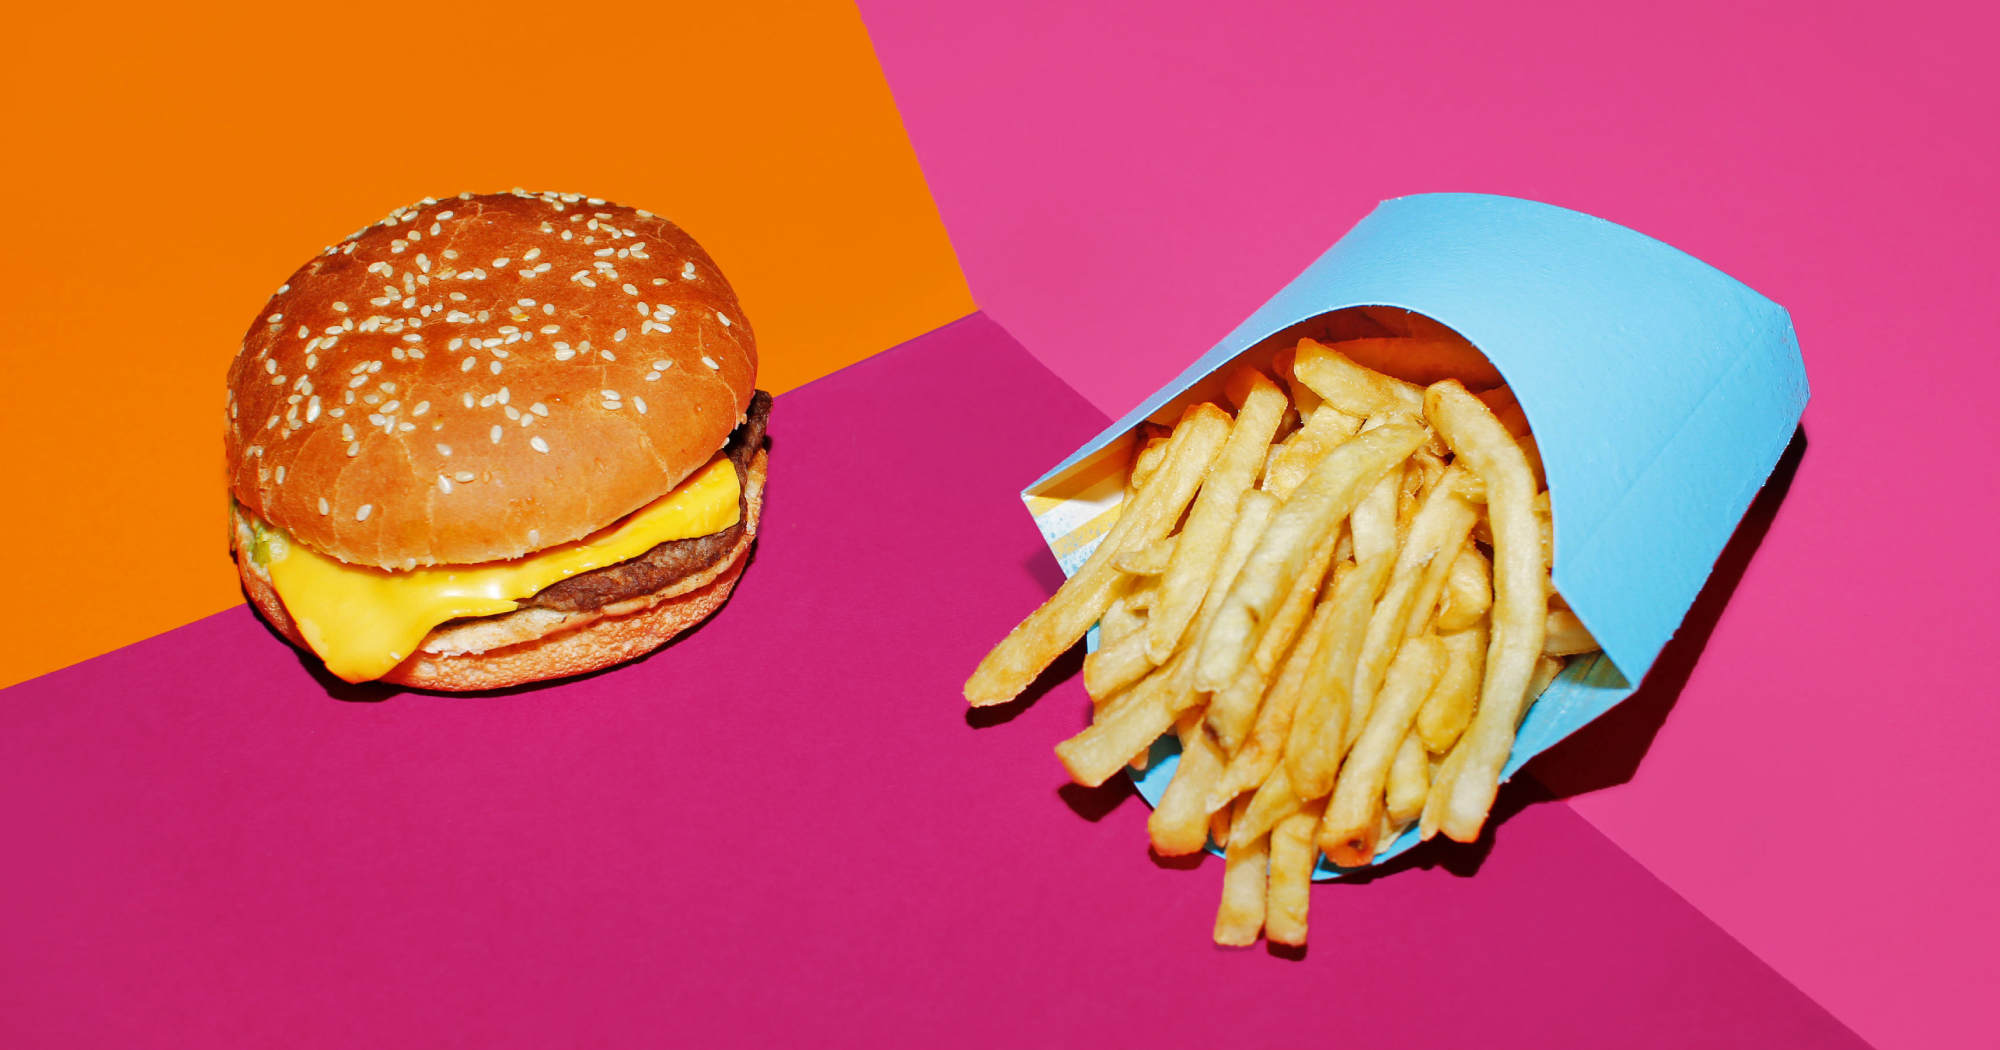 The Healthiest Things To Order At Fast Food Chains